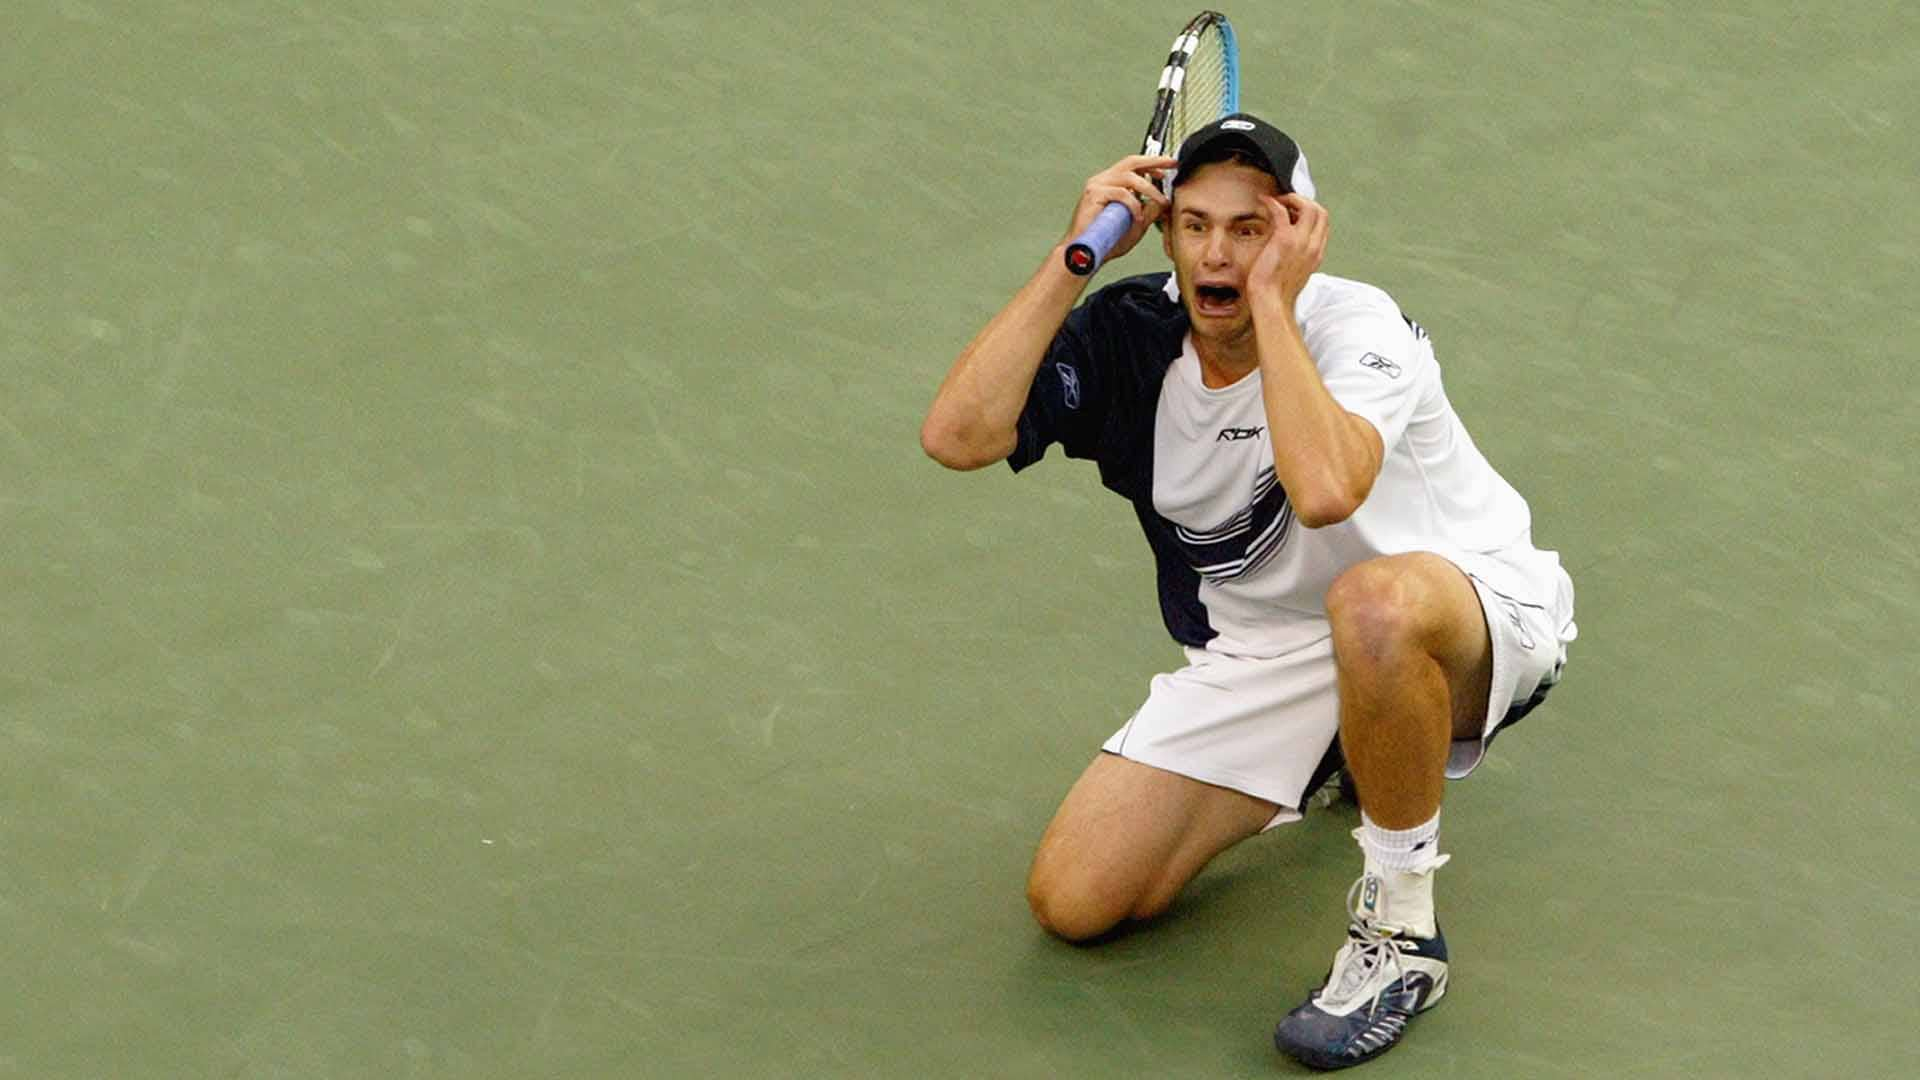 <a href='/en/players/andy-roddick/r485/overview'>Andy Roddick</a> beat <a href='/en/players/juan-carlos-ferrero/f316/overview'>Juan Carlos Ferrero</a> in straight sets to win the 2003 <a href='/en/tournaments/us-open/560/overview'>US Open</a>.